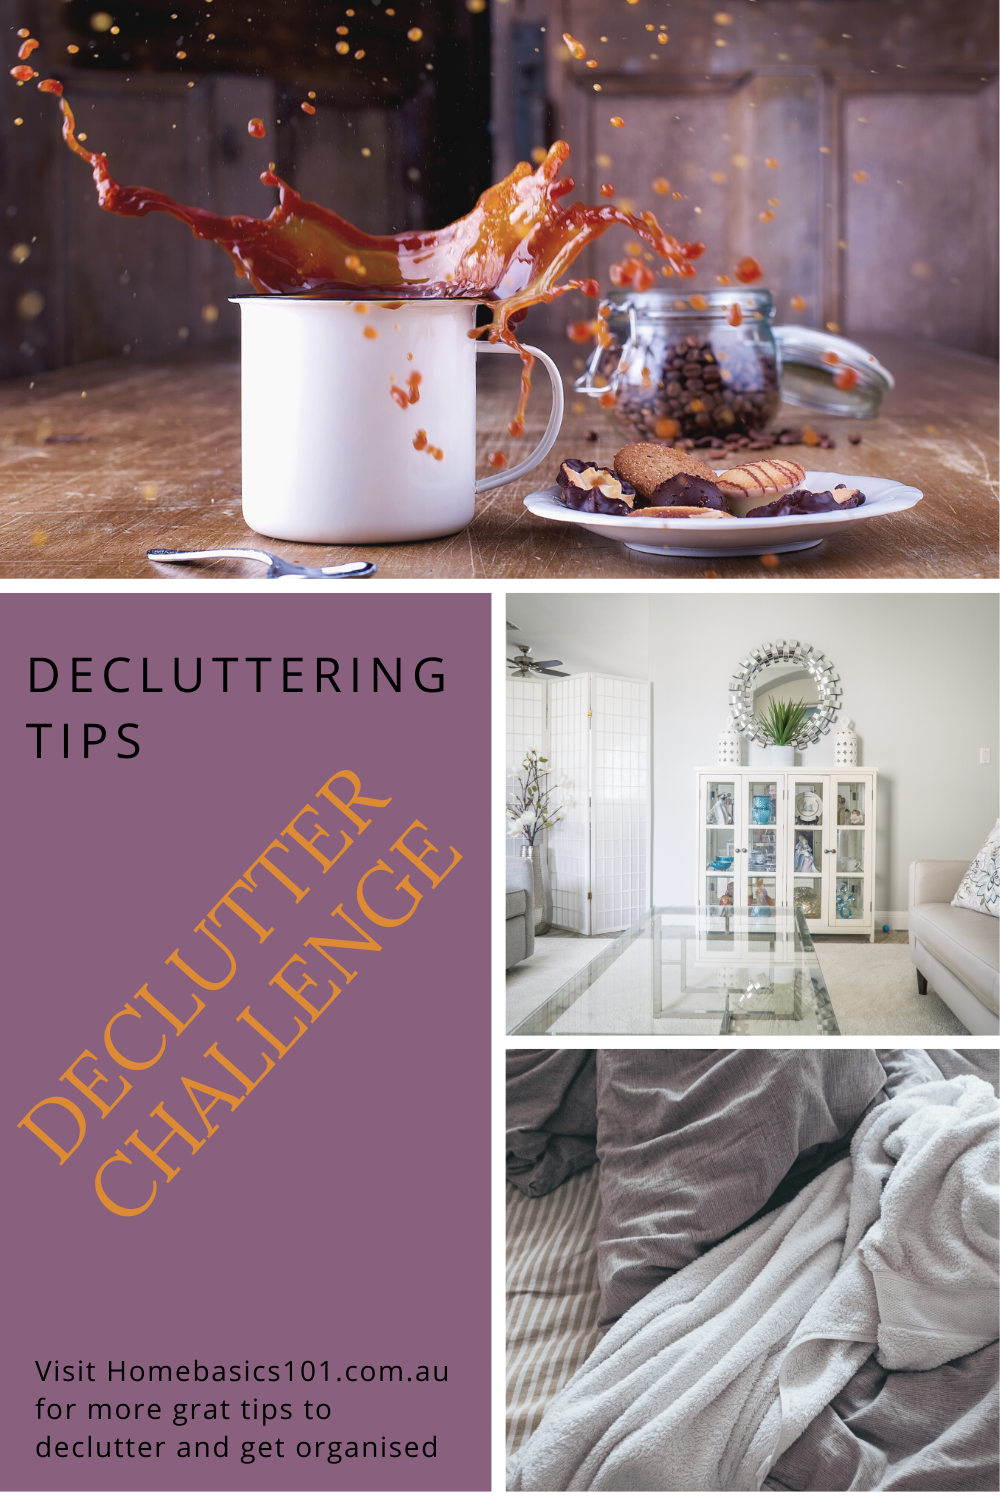 Free your mind with a little decluttering around the home